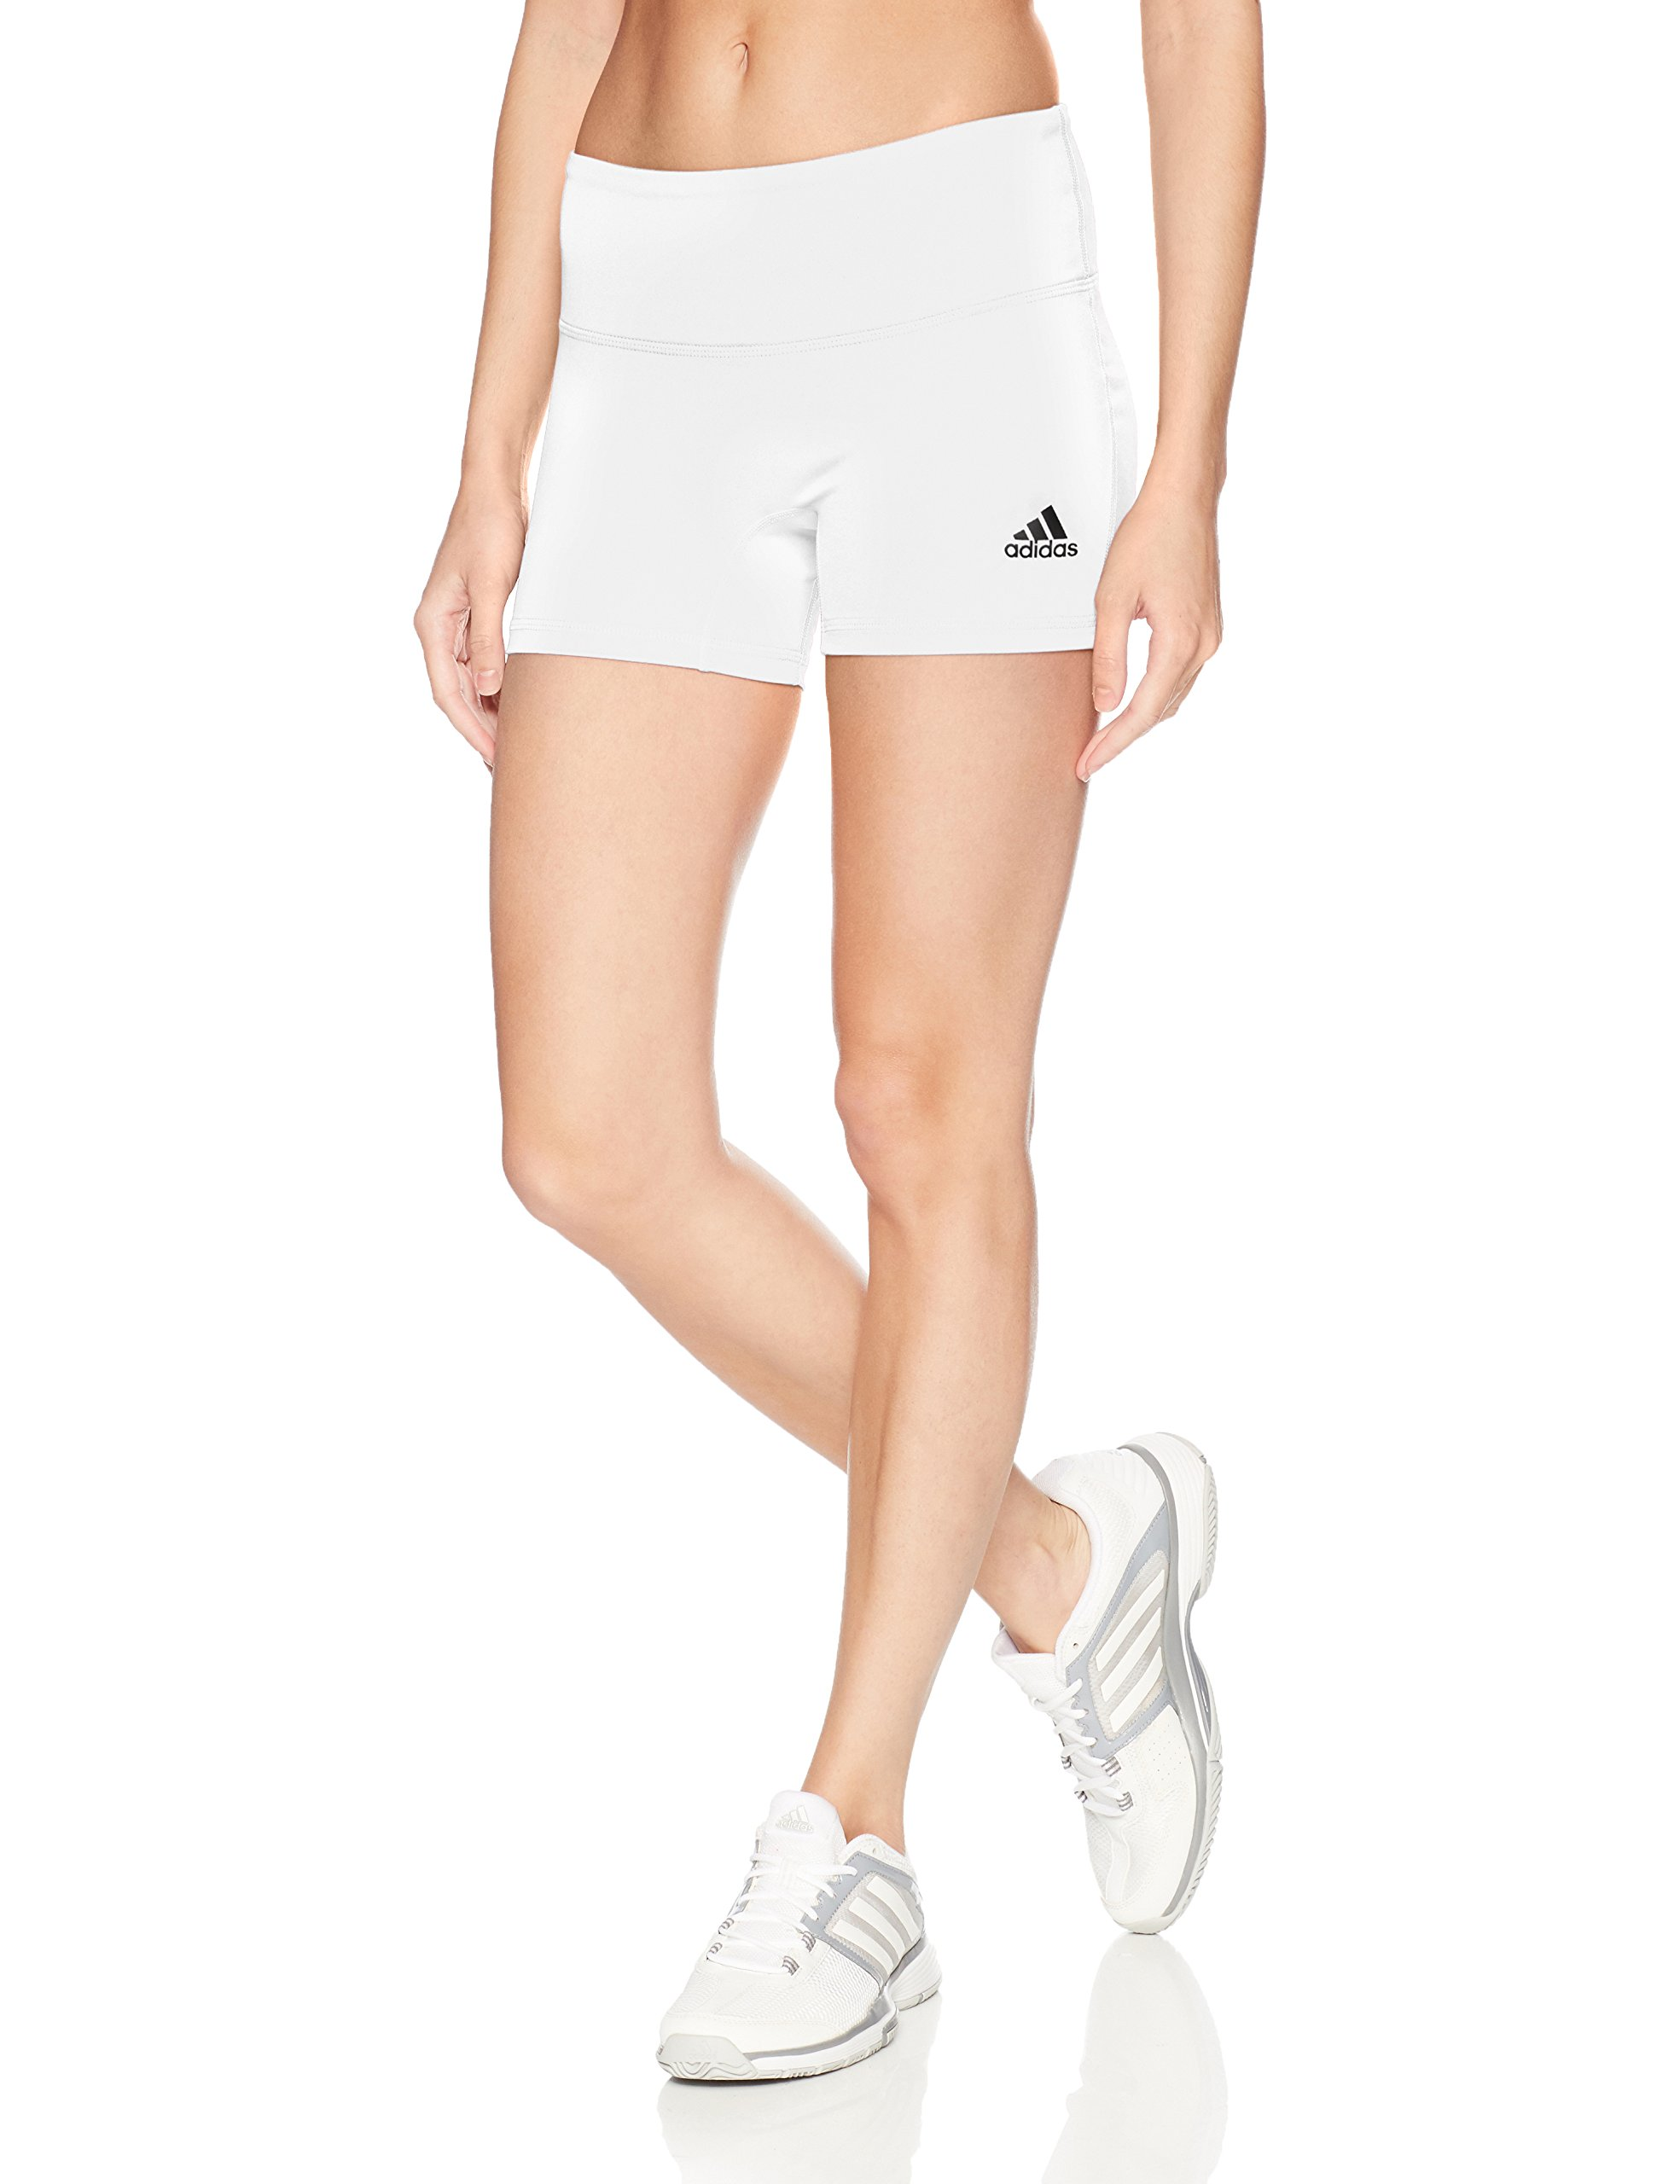 adidas Women's 4 Inch Short Tight, White, XX-Small